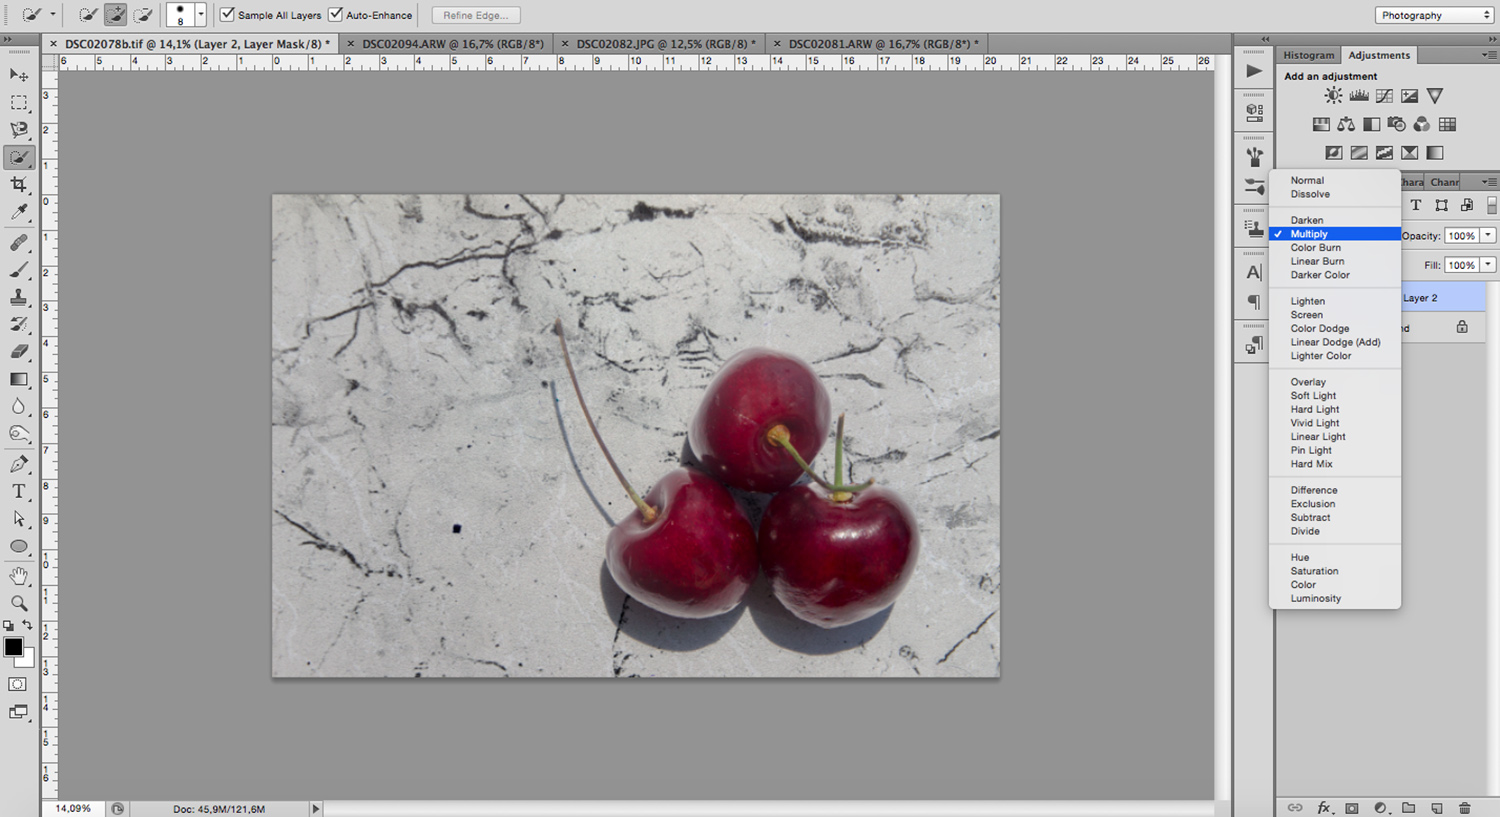 Use blending modes to incorporate the background and make it more realistic